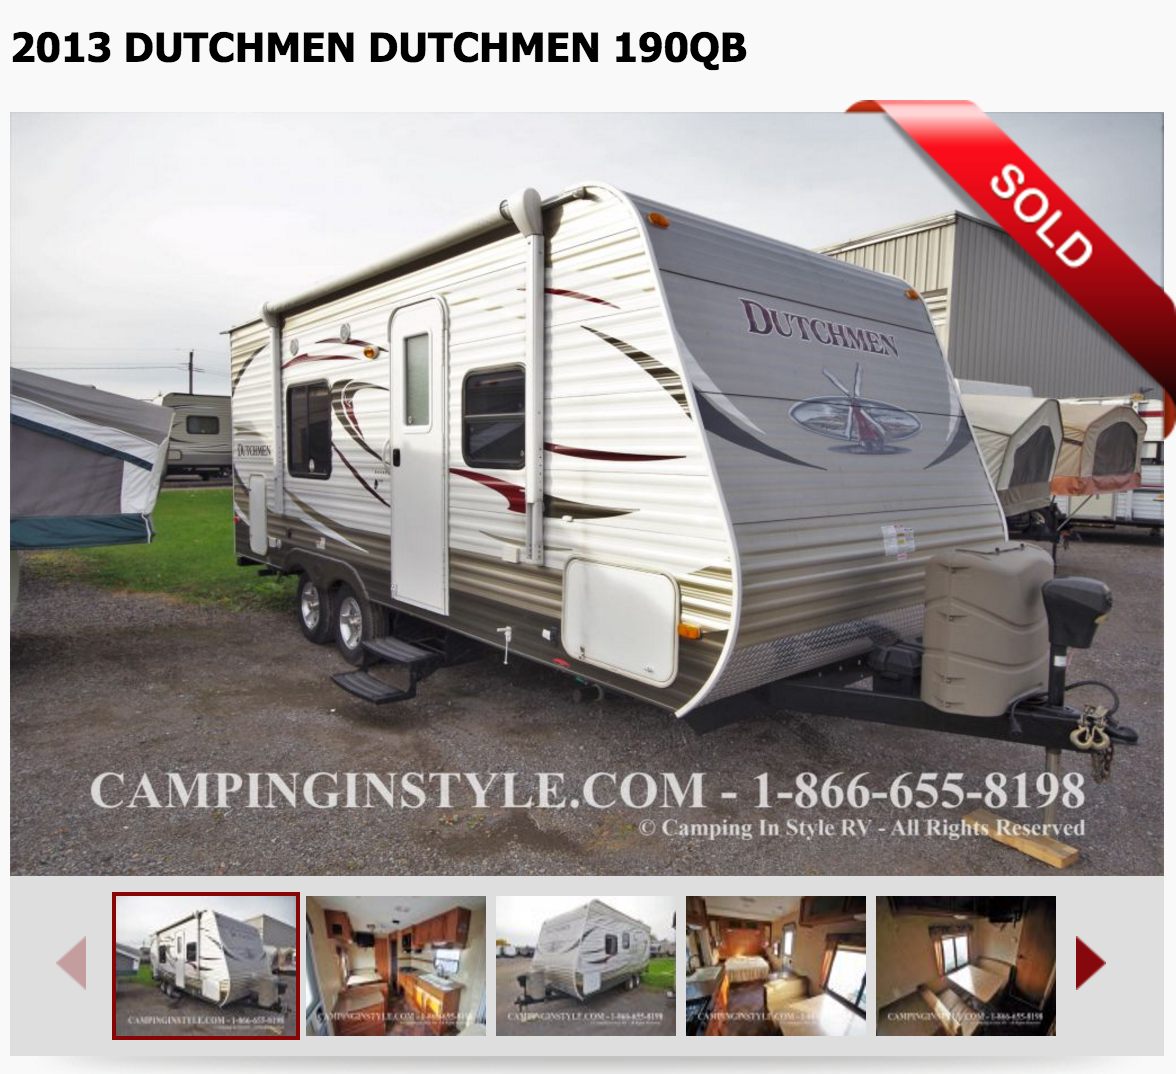 SOLD - Our trailer - Outside